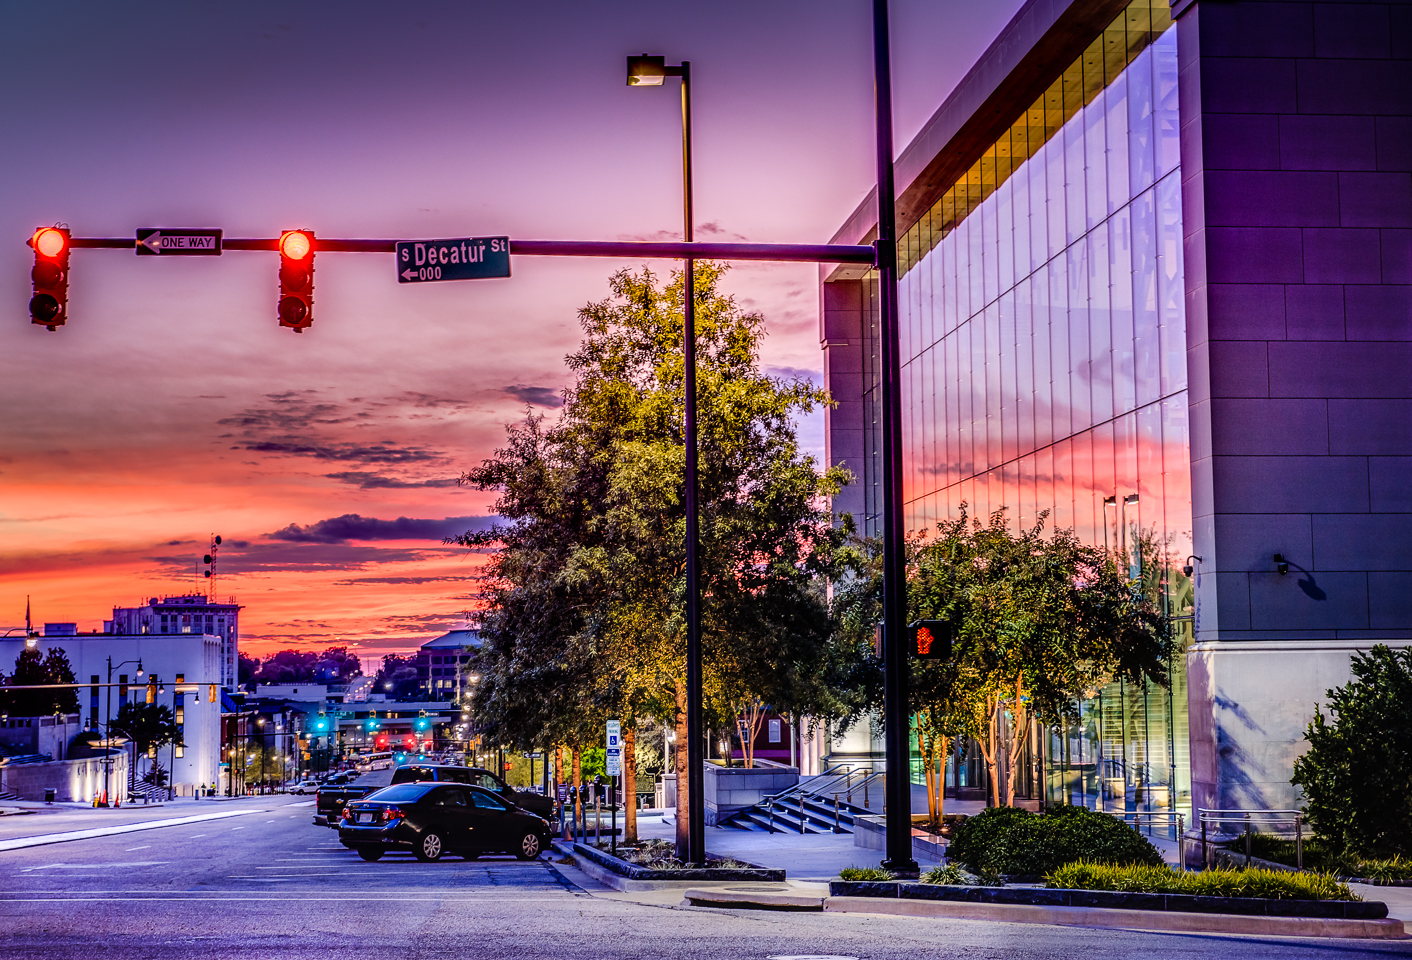 Downtown Montgomery Alabama at dusk